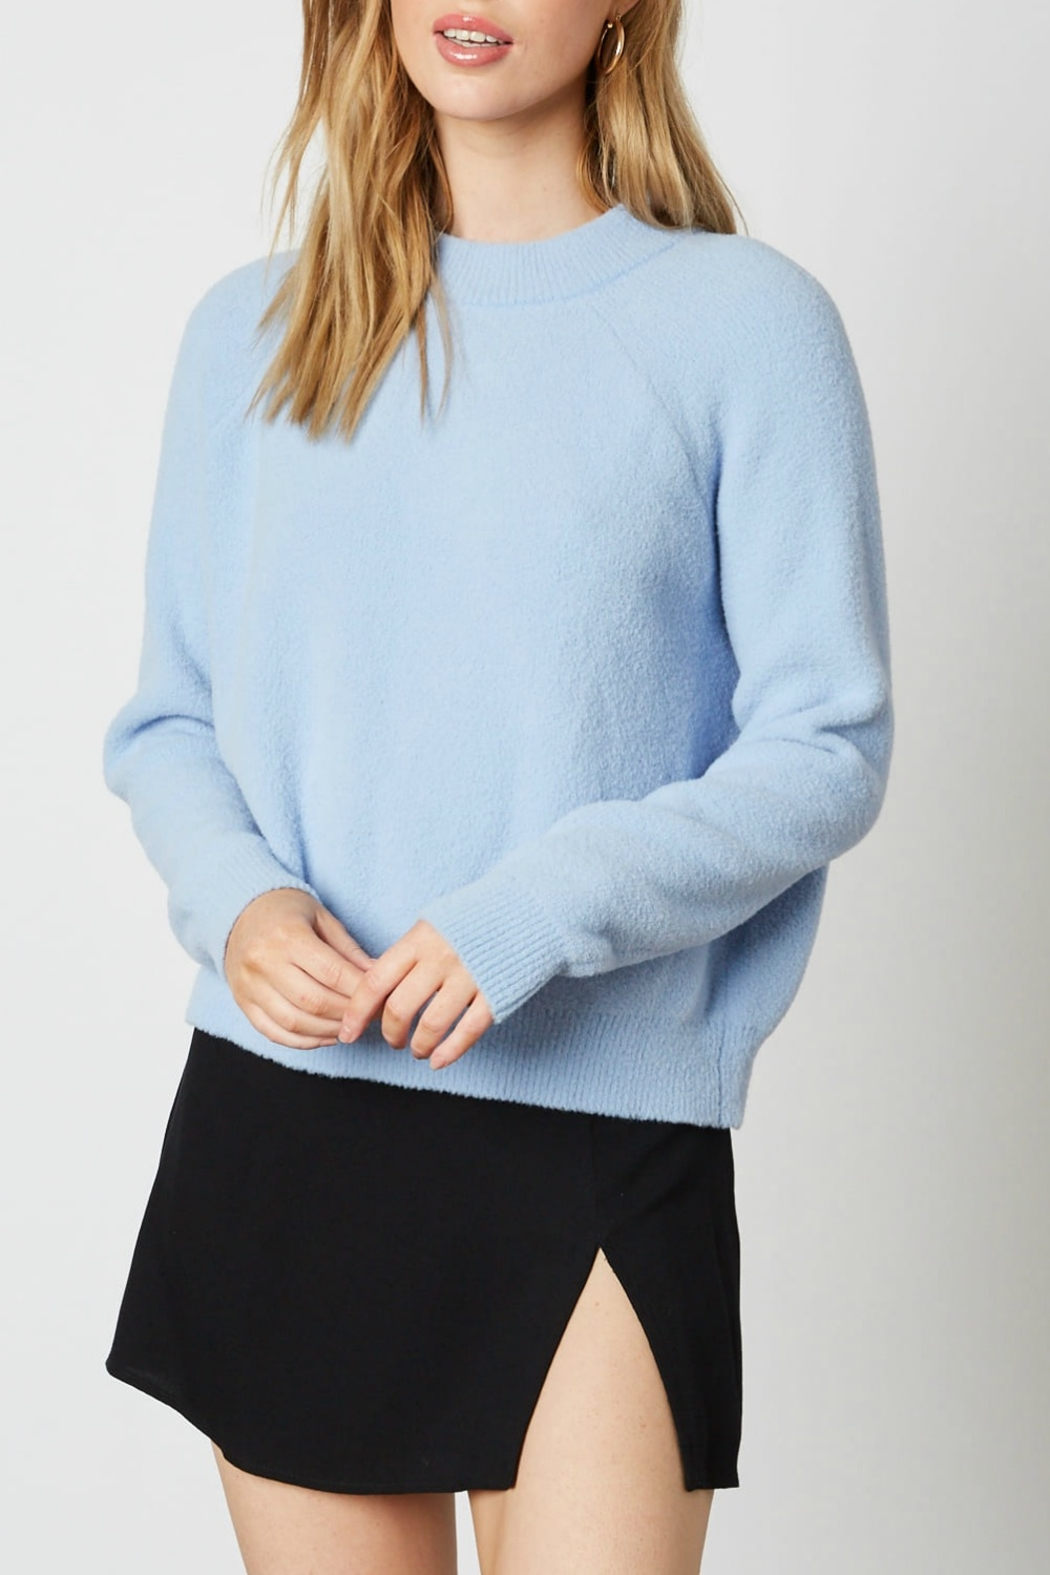 Cotton Candy Long sleeve sweater - Main Image